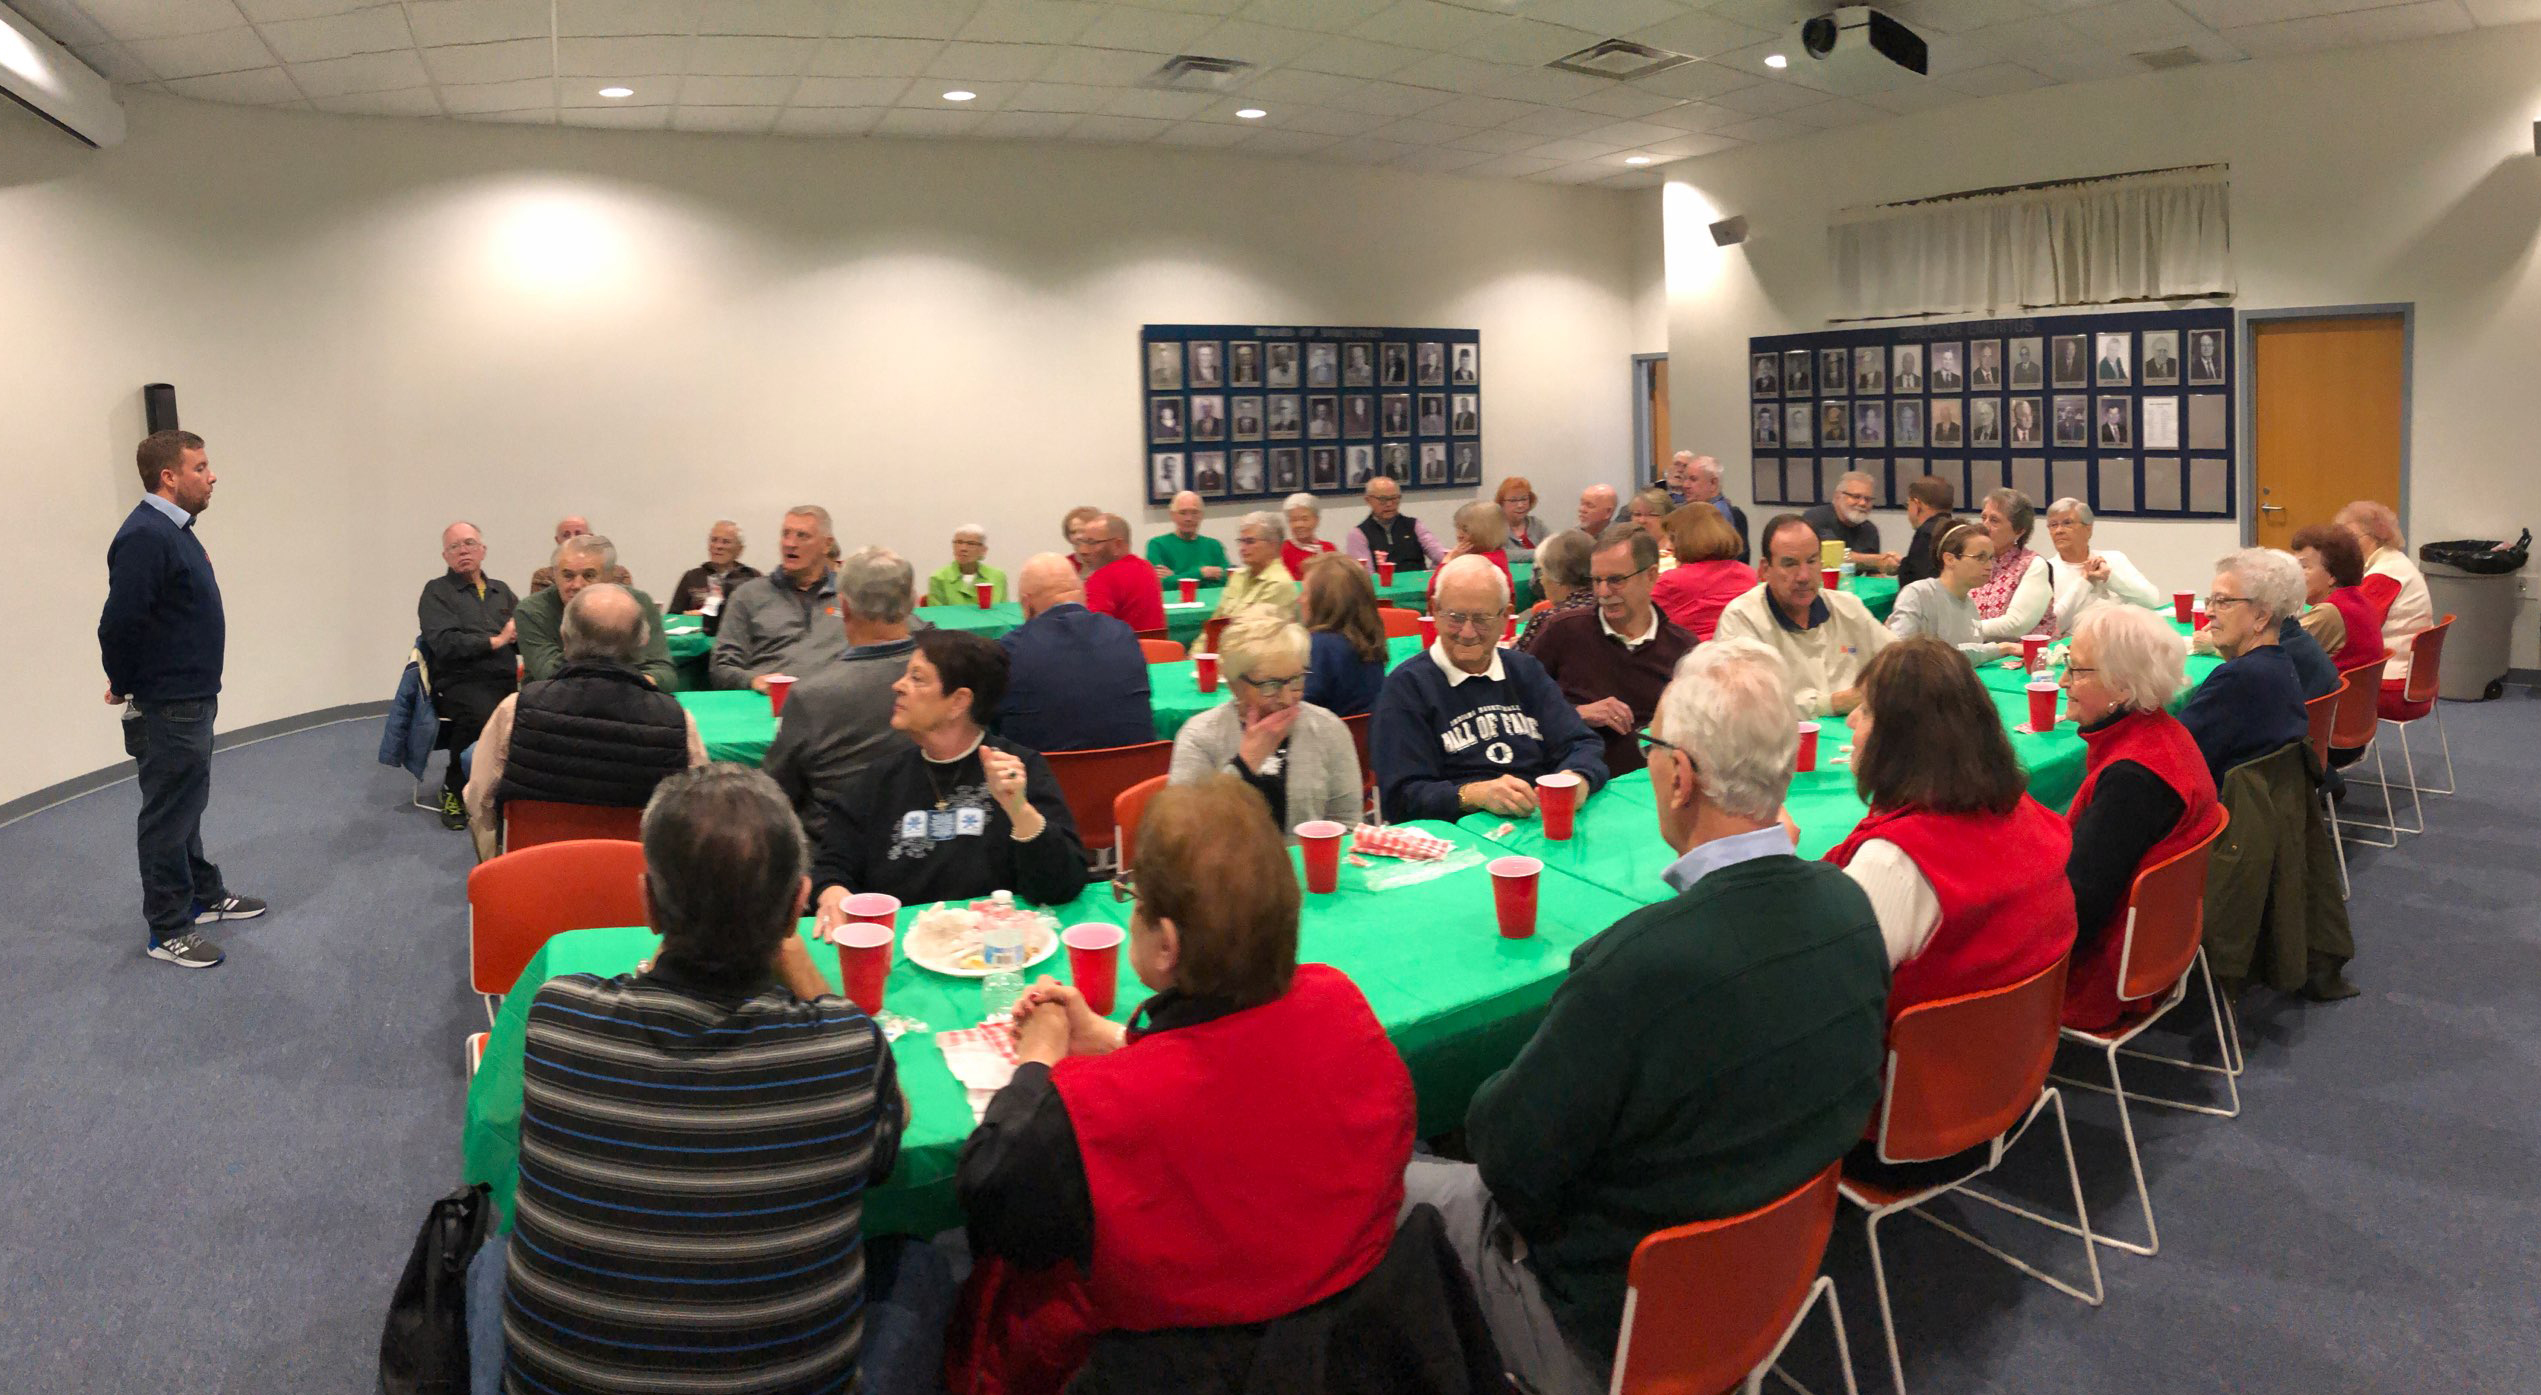 Indiana Basketball Hall of Fame volunteers listen to director Chris May at the Christmas lunch